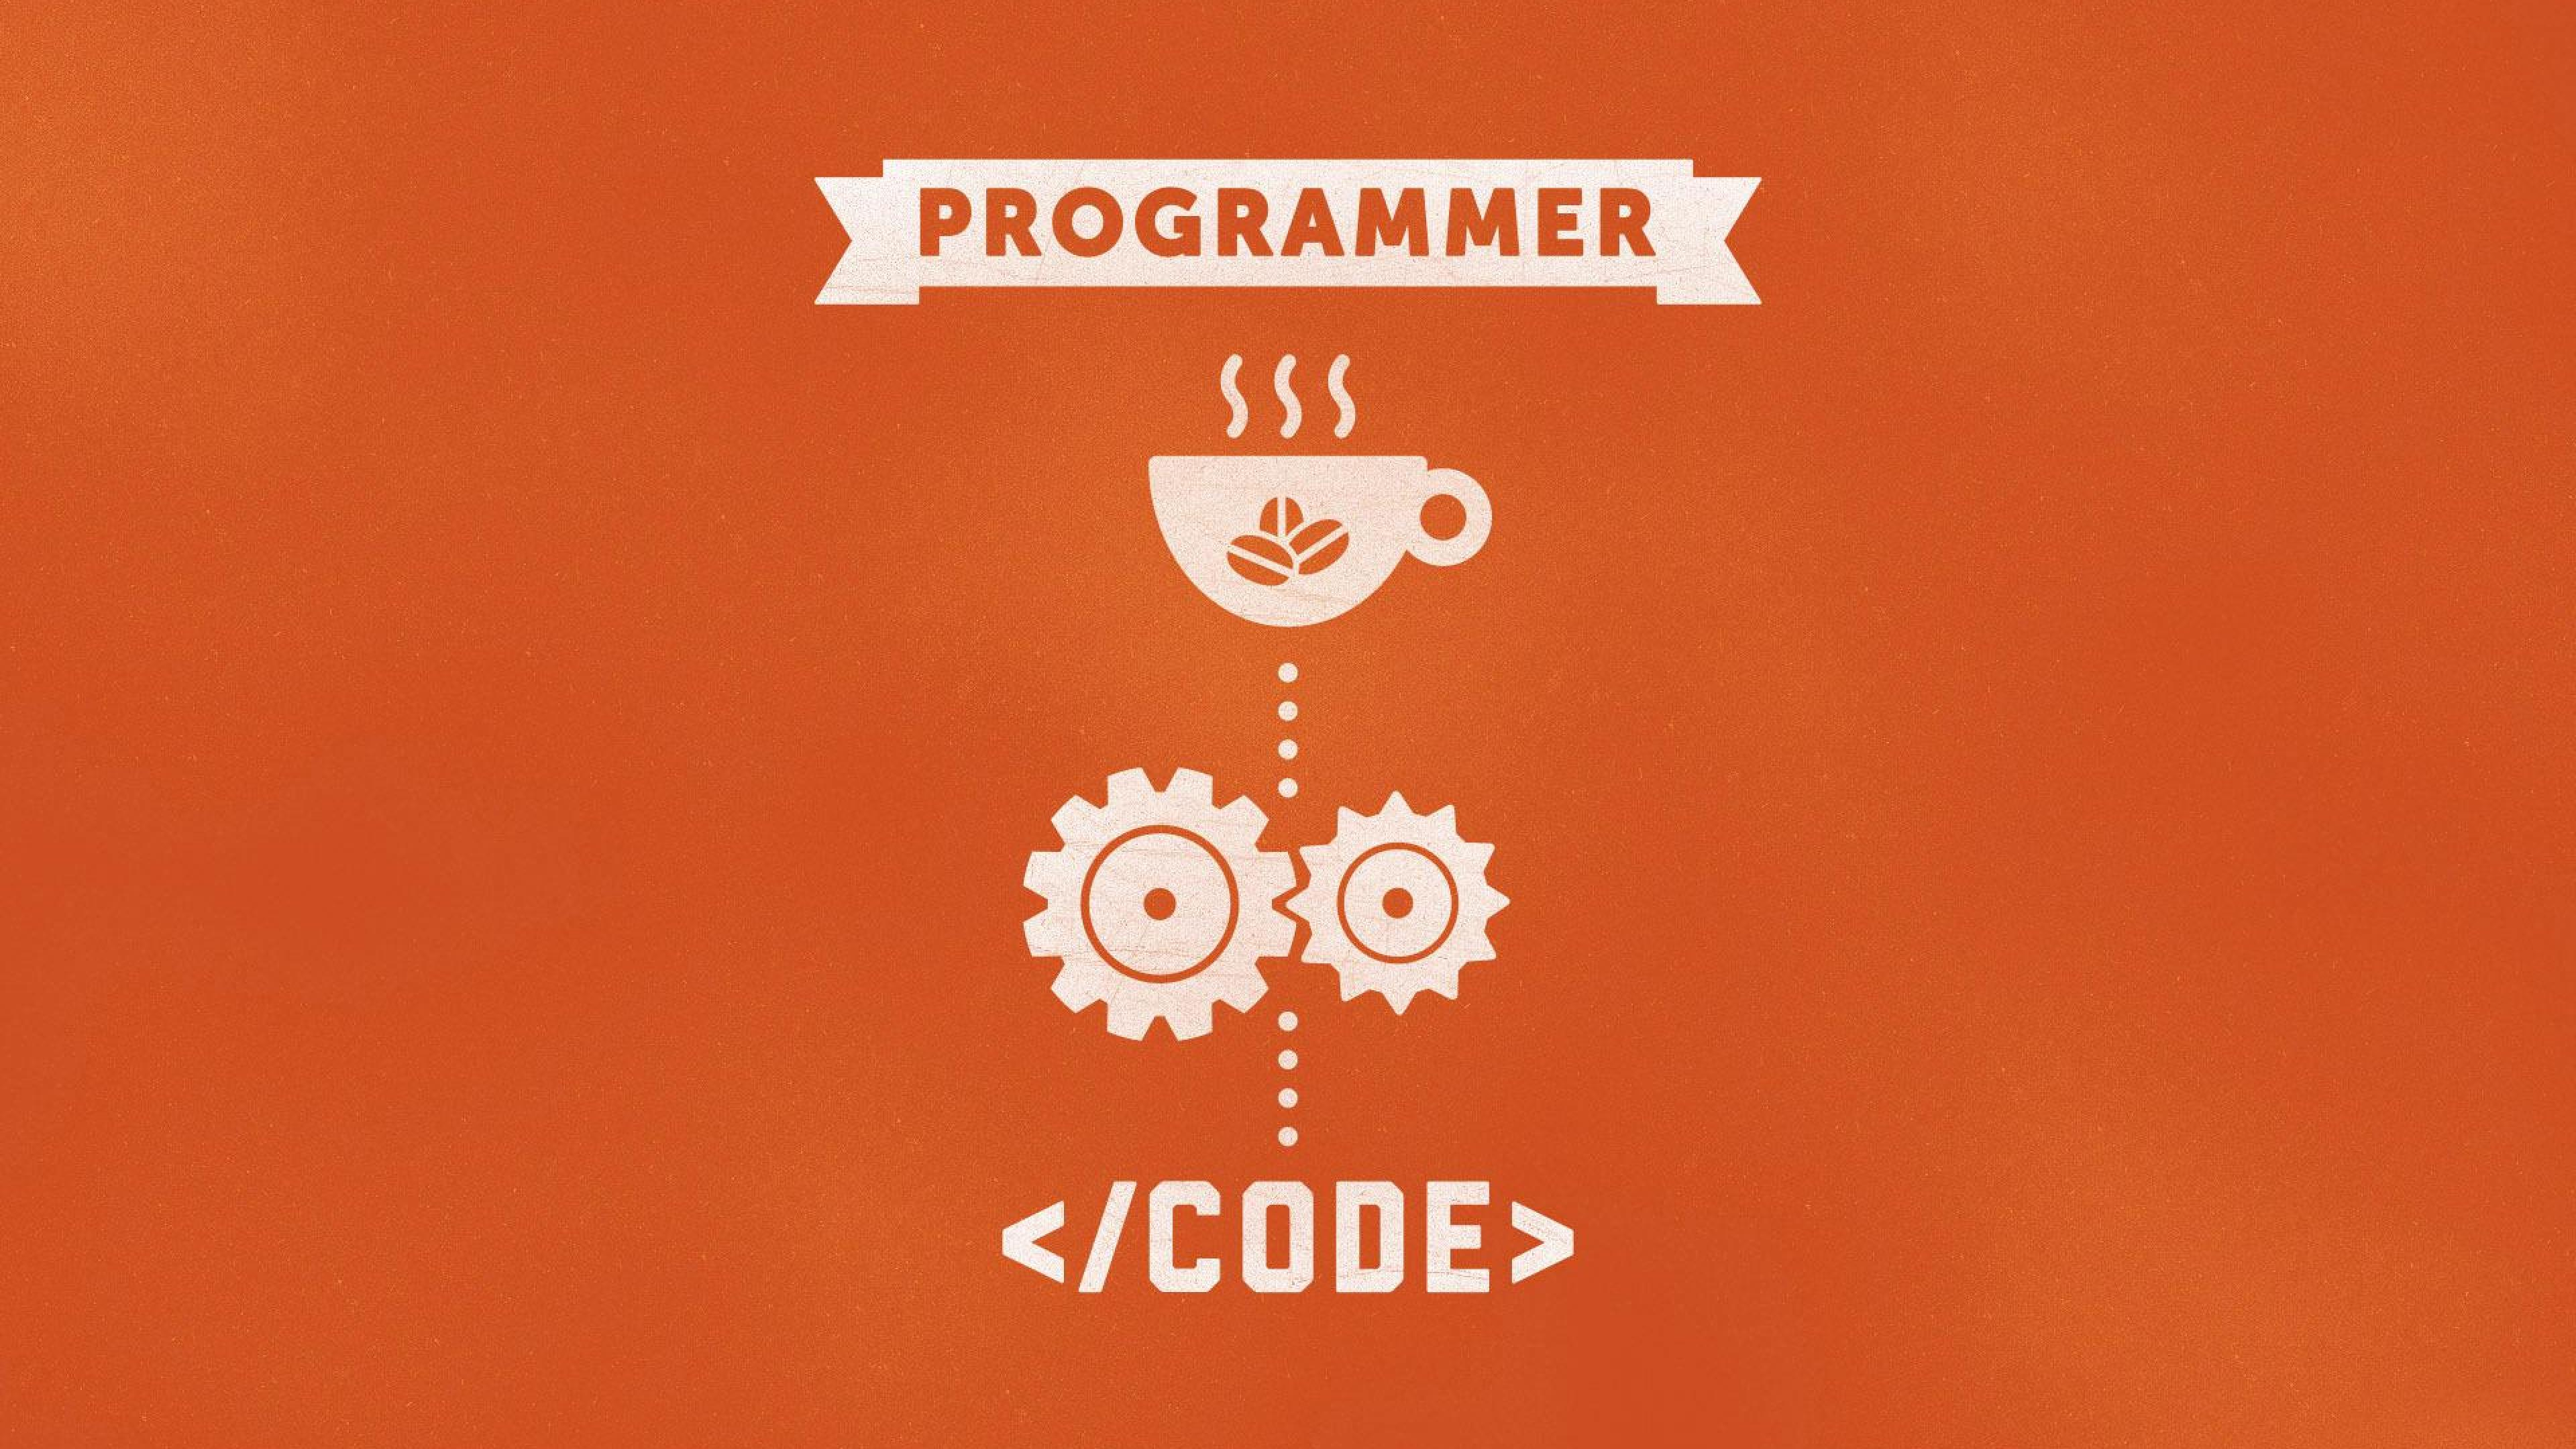 Typography coffee programmer code